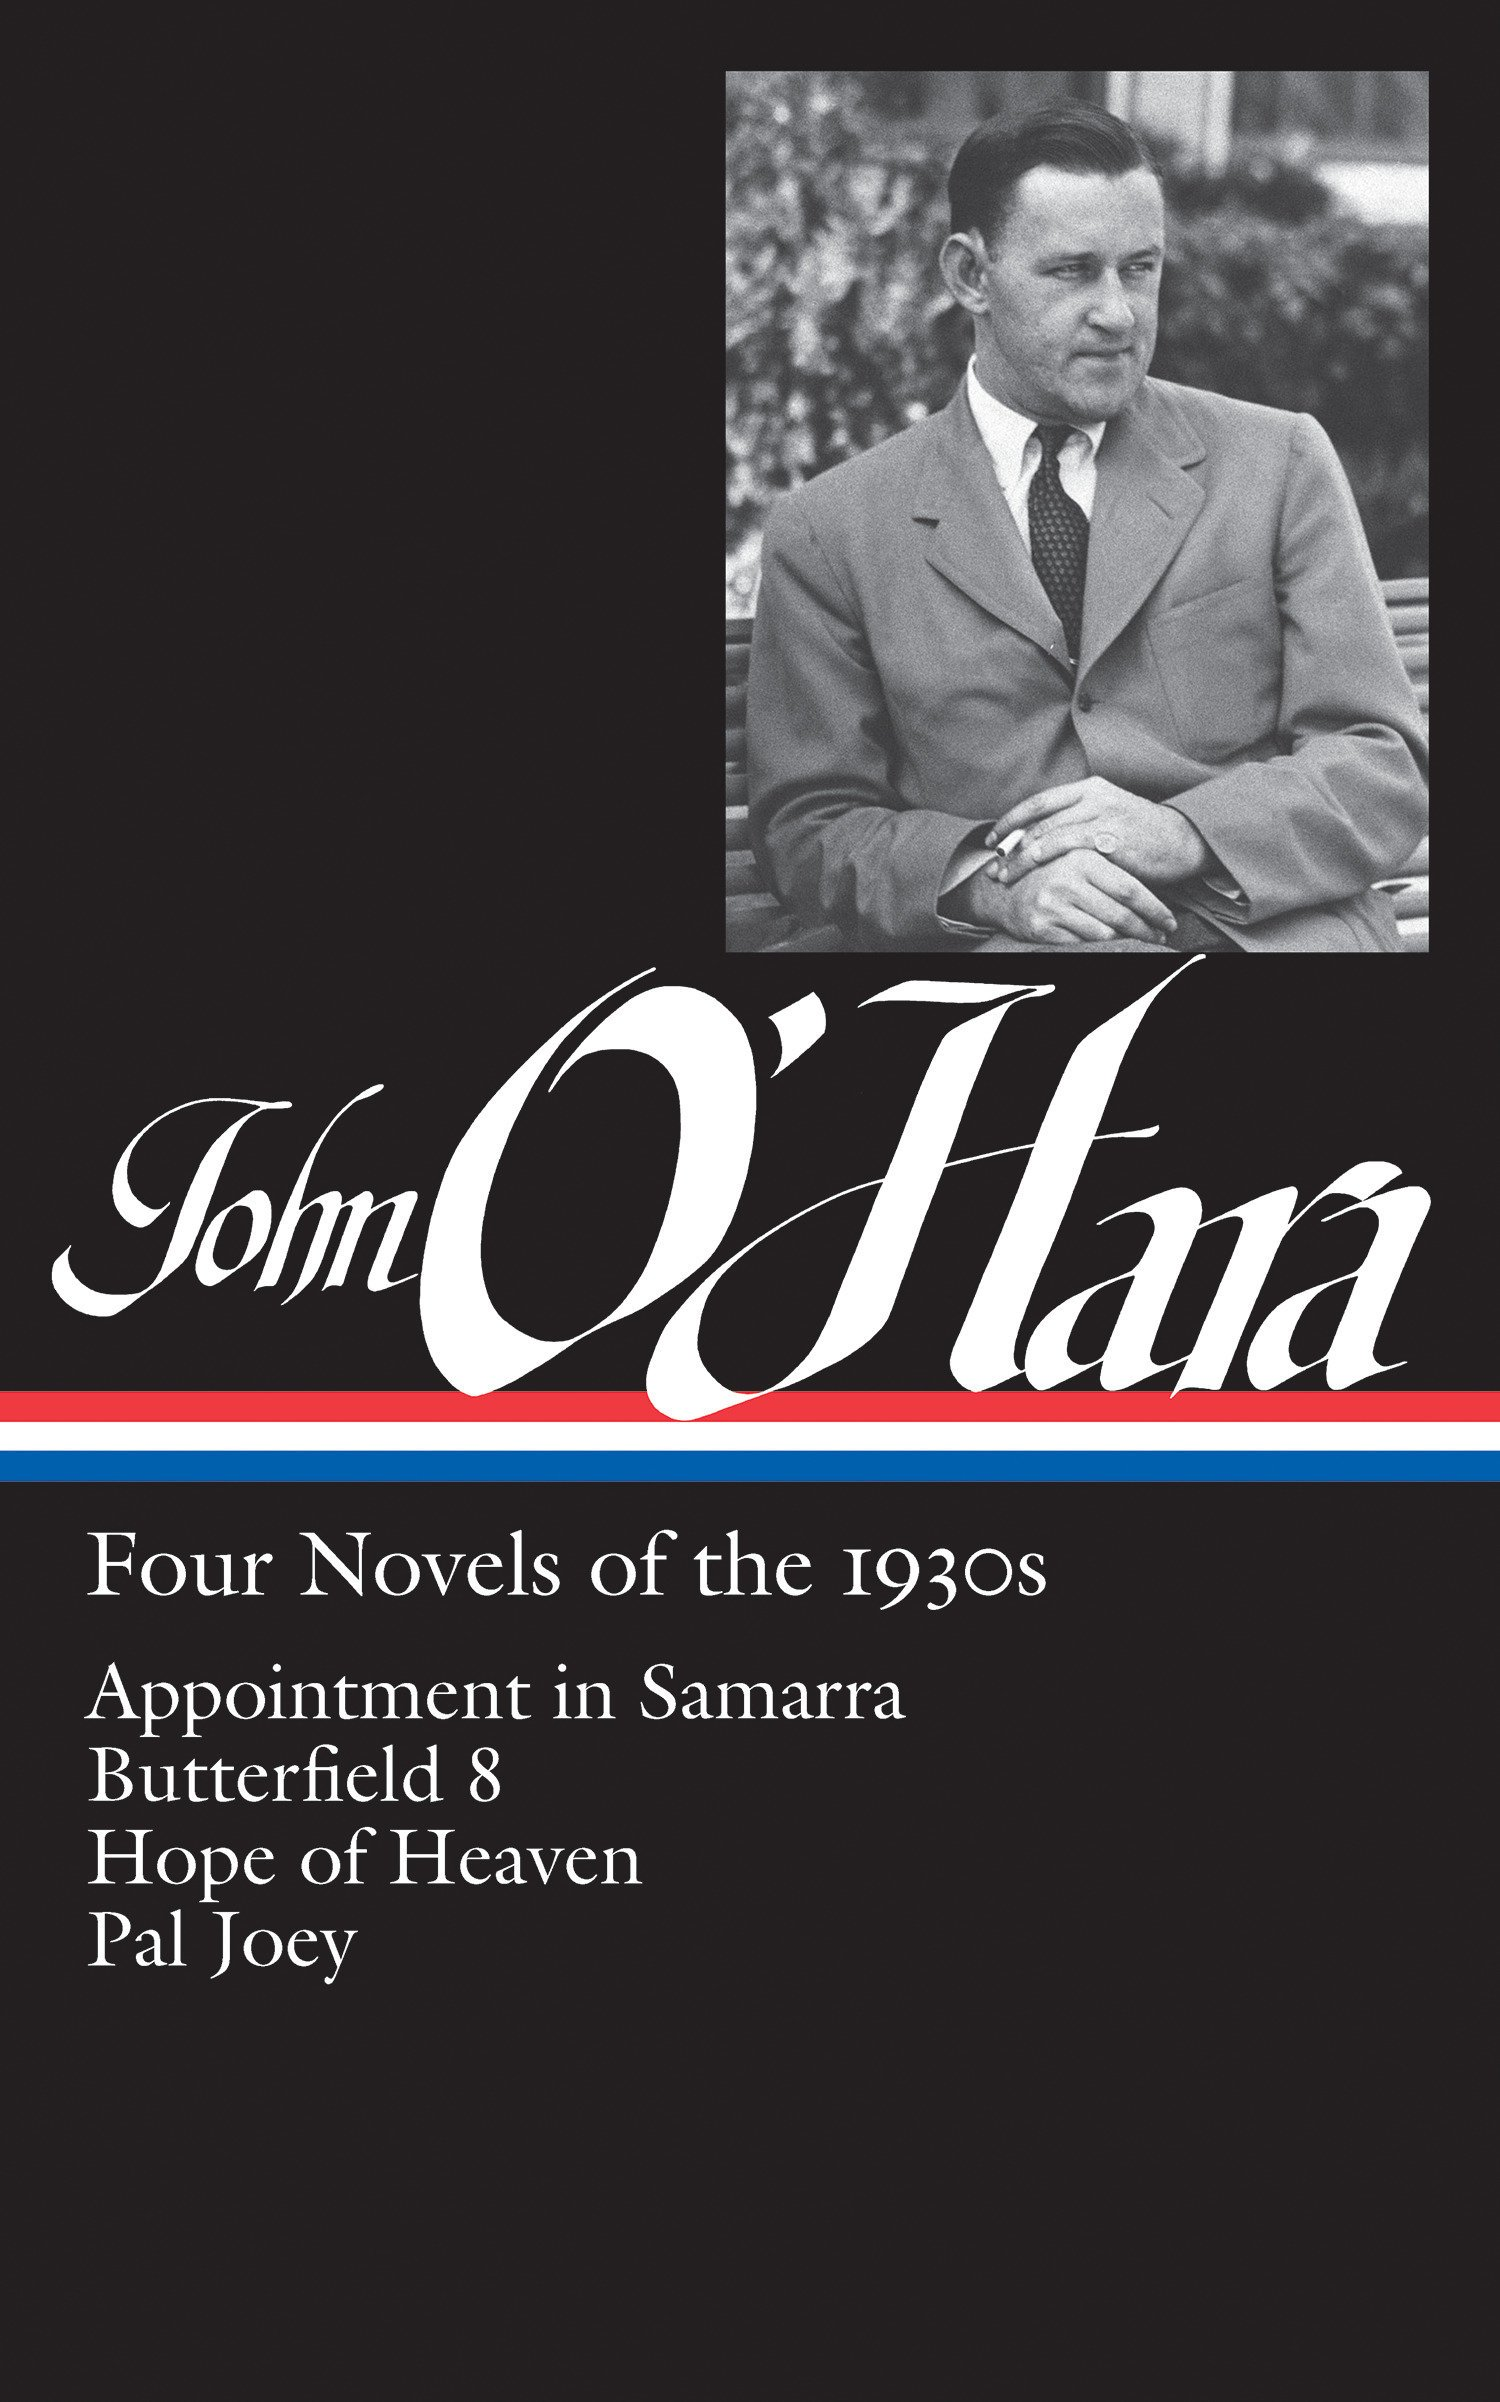 Four Novels Of The 1930s (Library of America) de Penguin USA